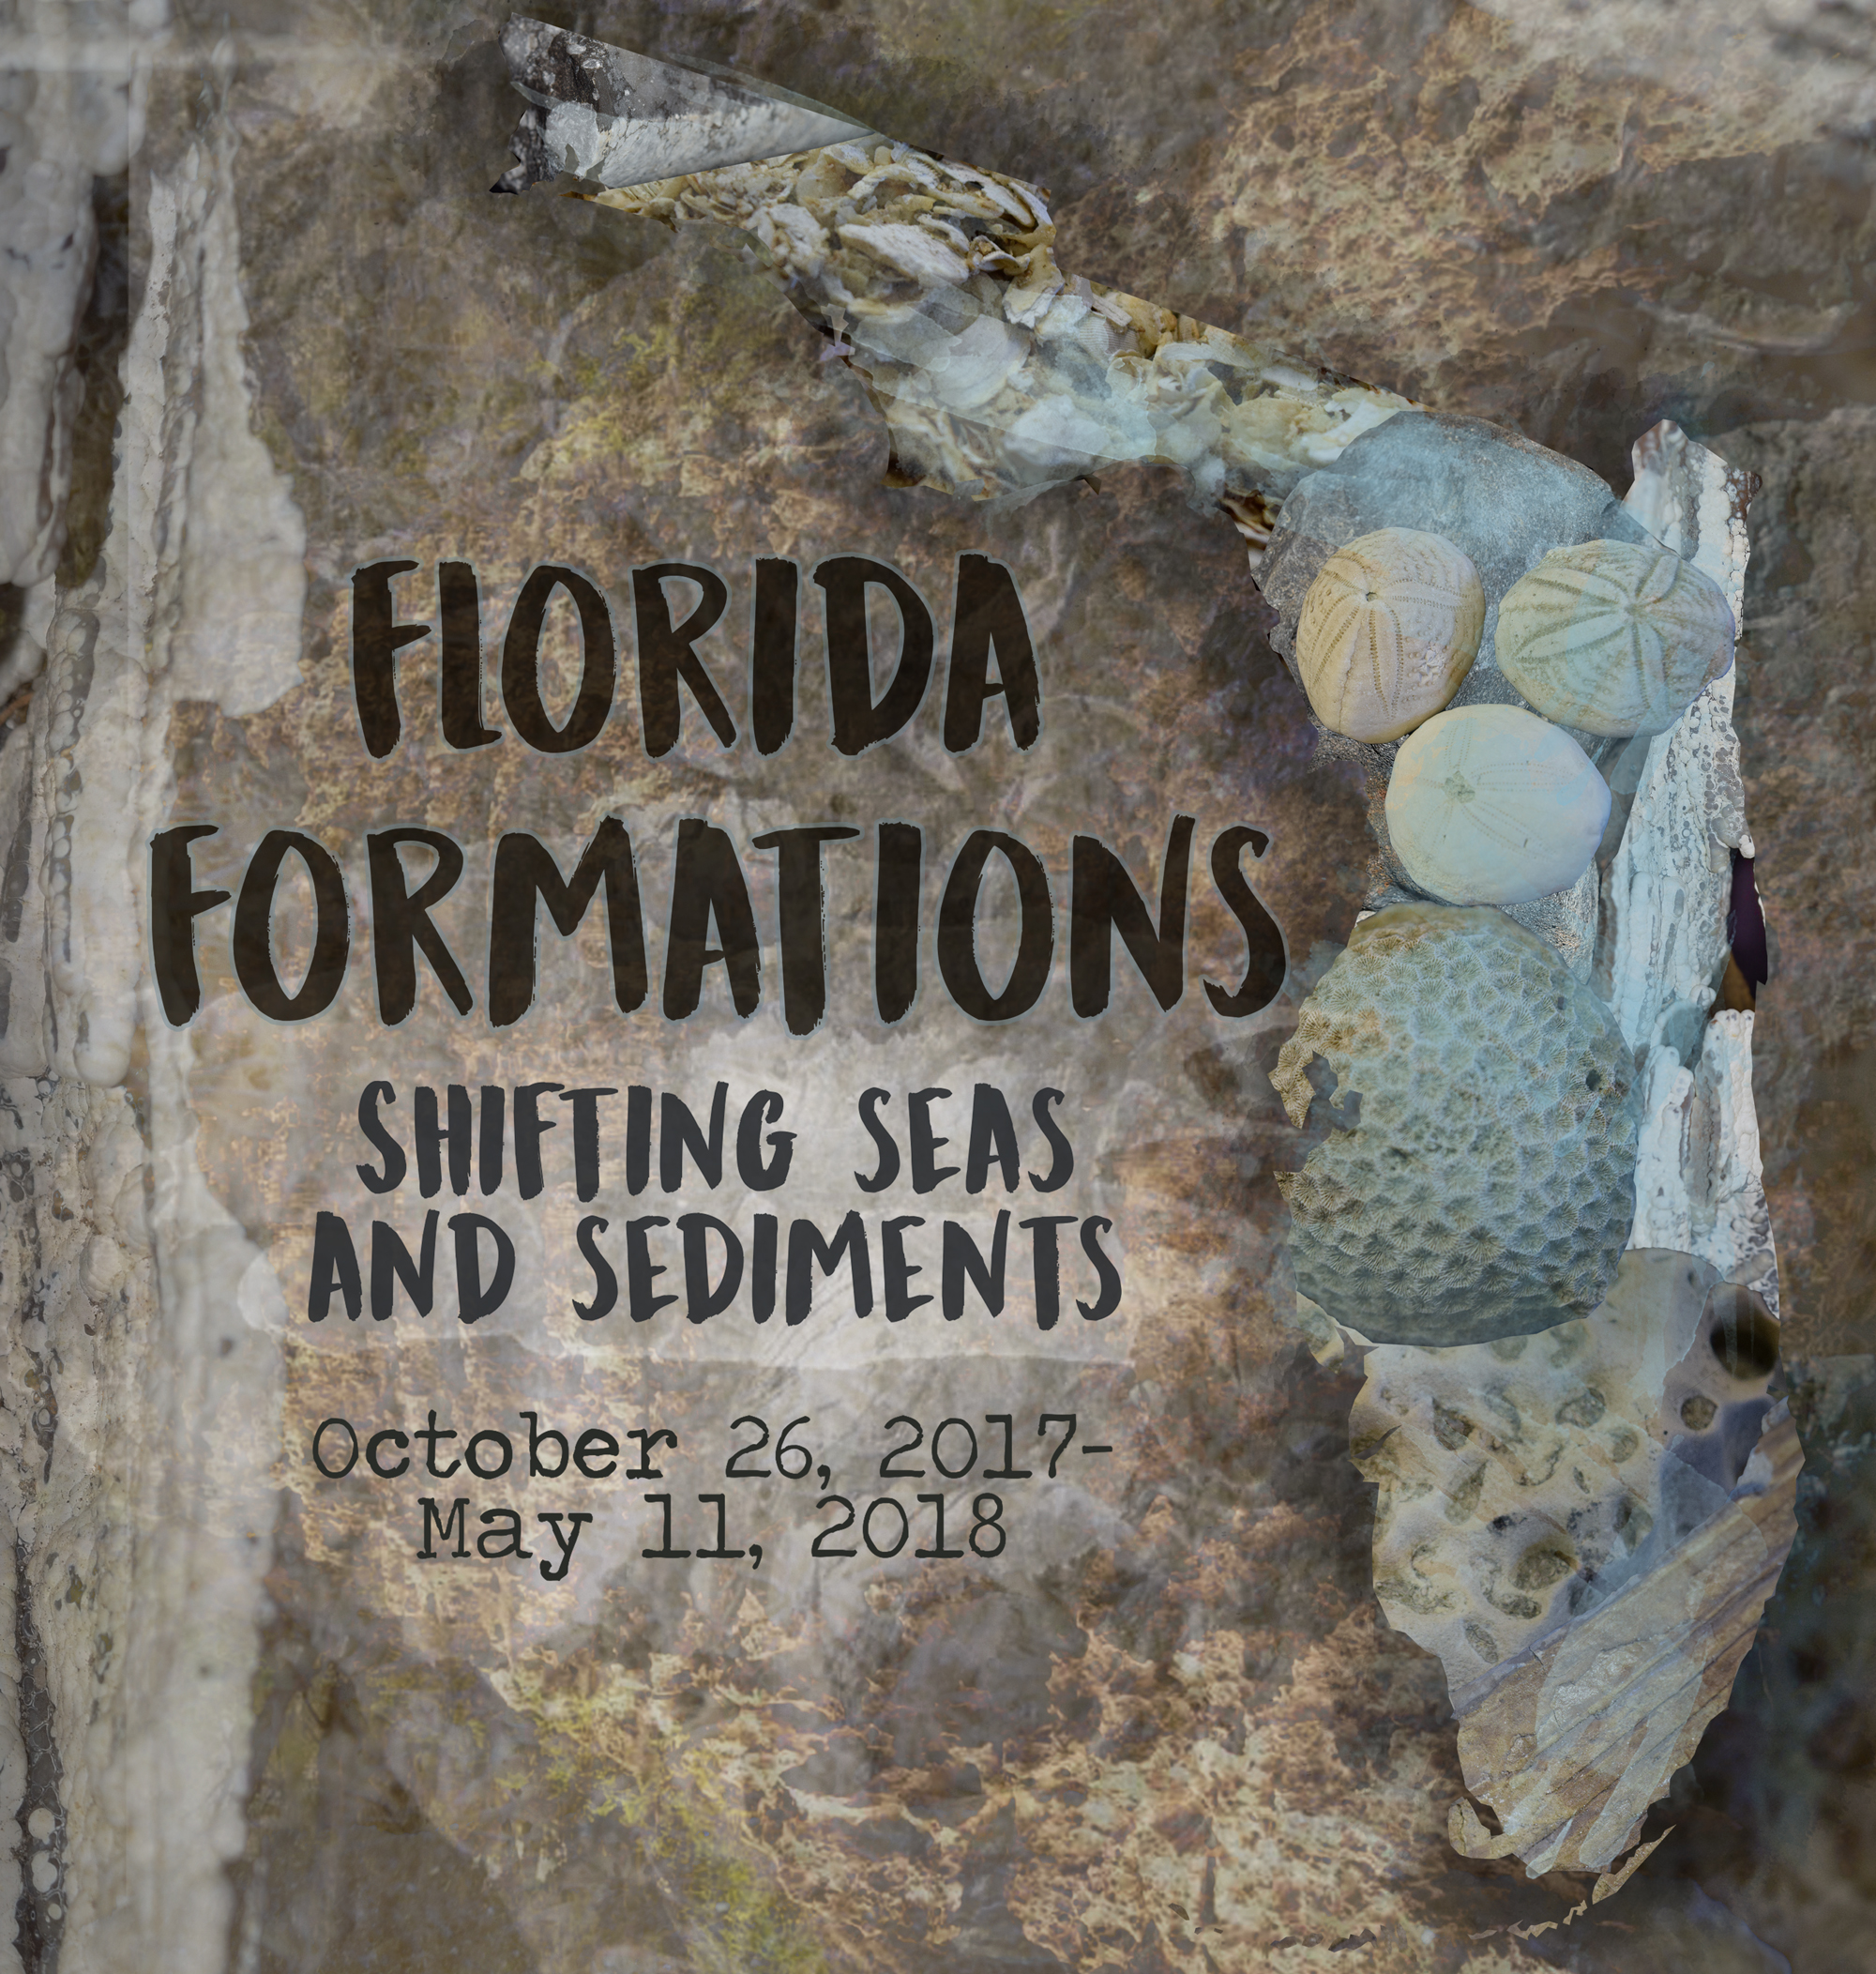 Florida Formations, a new exhibit focusing on Florida geology, opening October 26